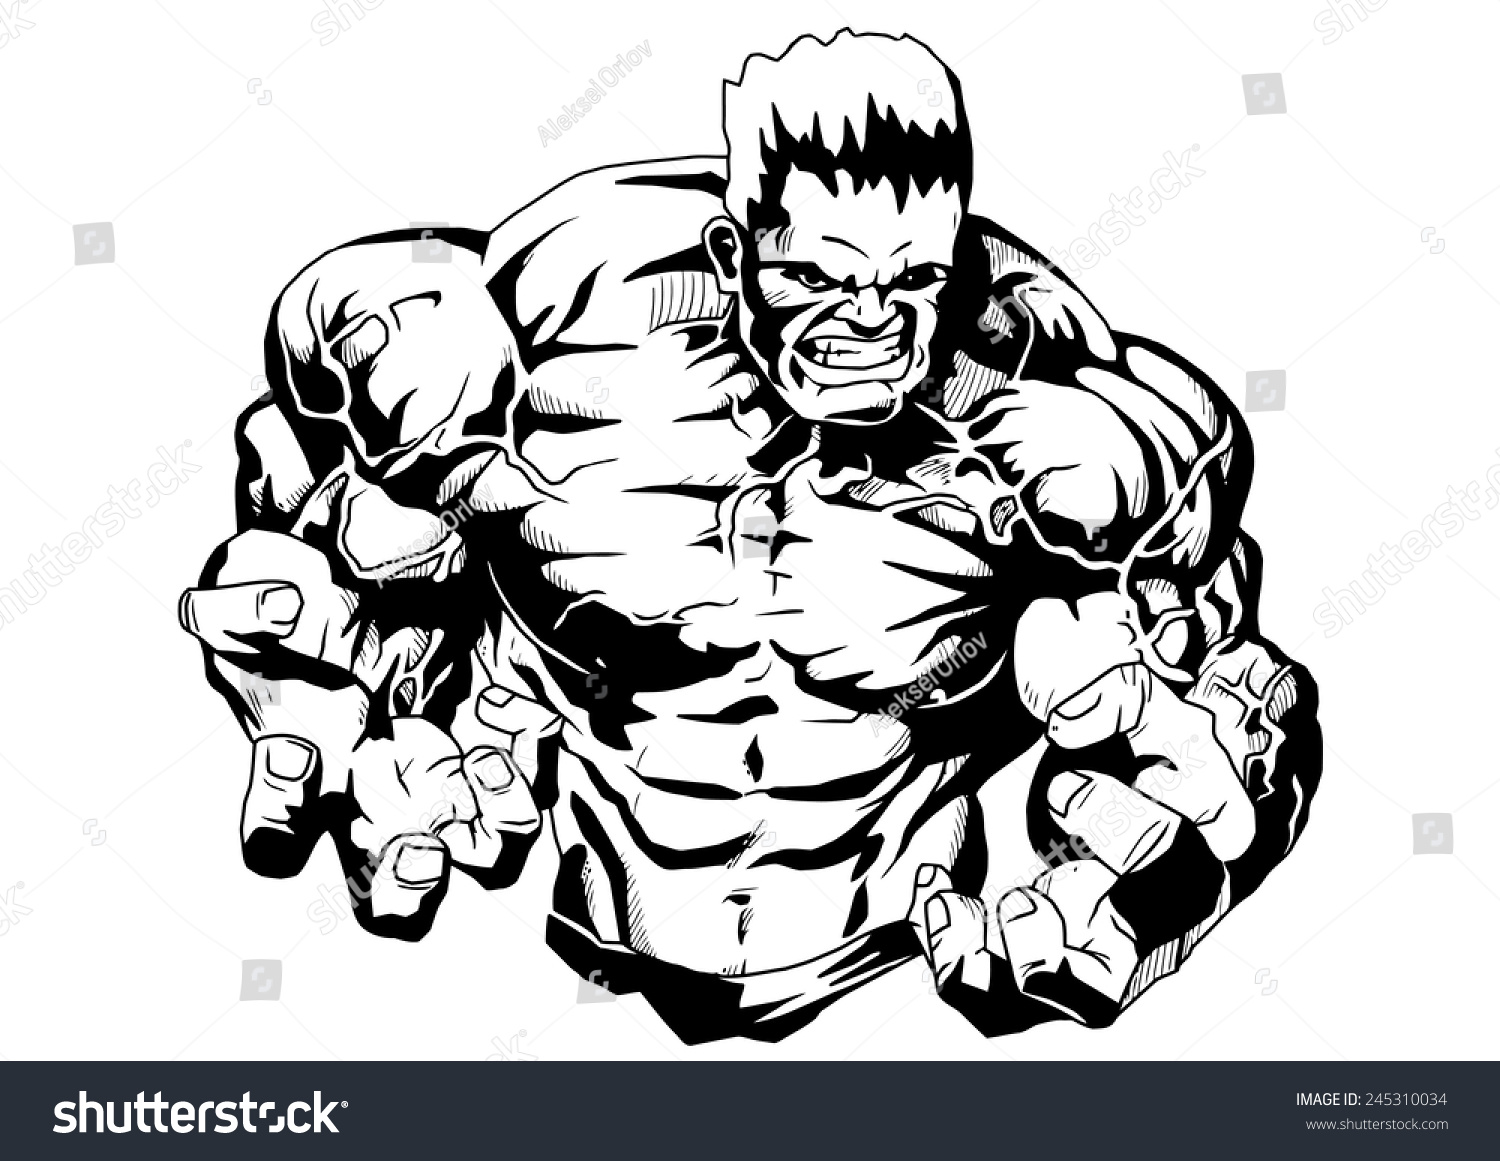 Gallery For gt Bodybuilding Drawing